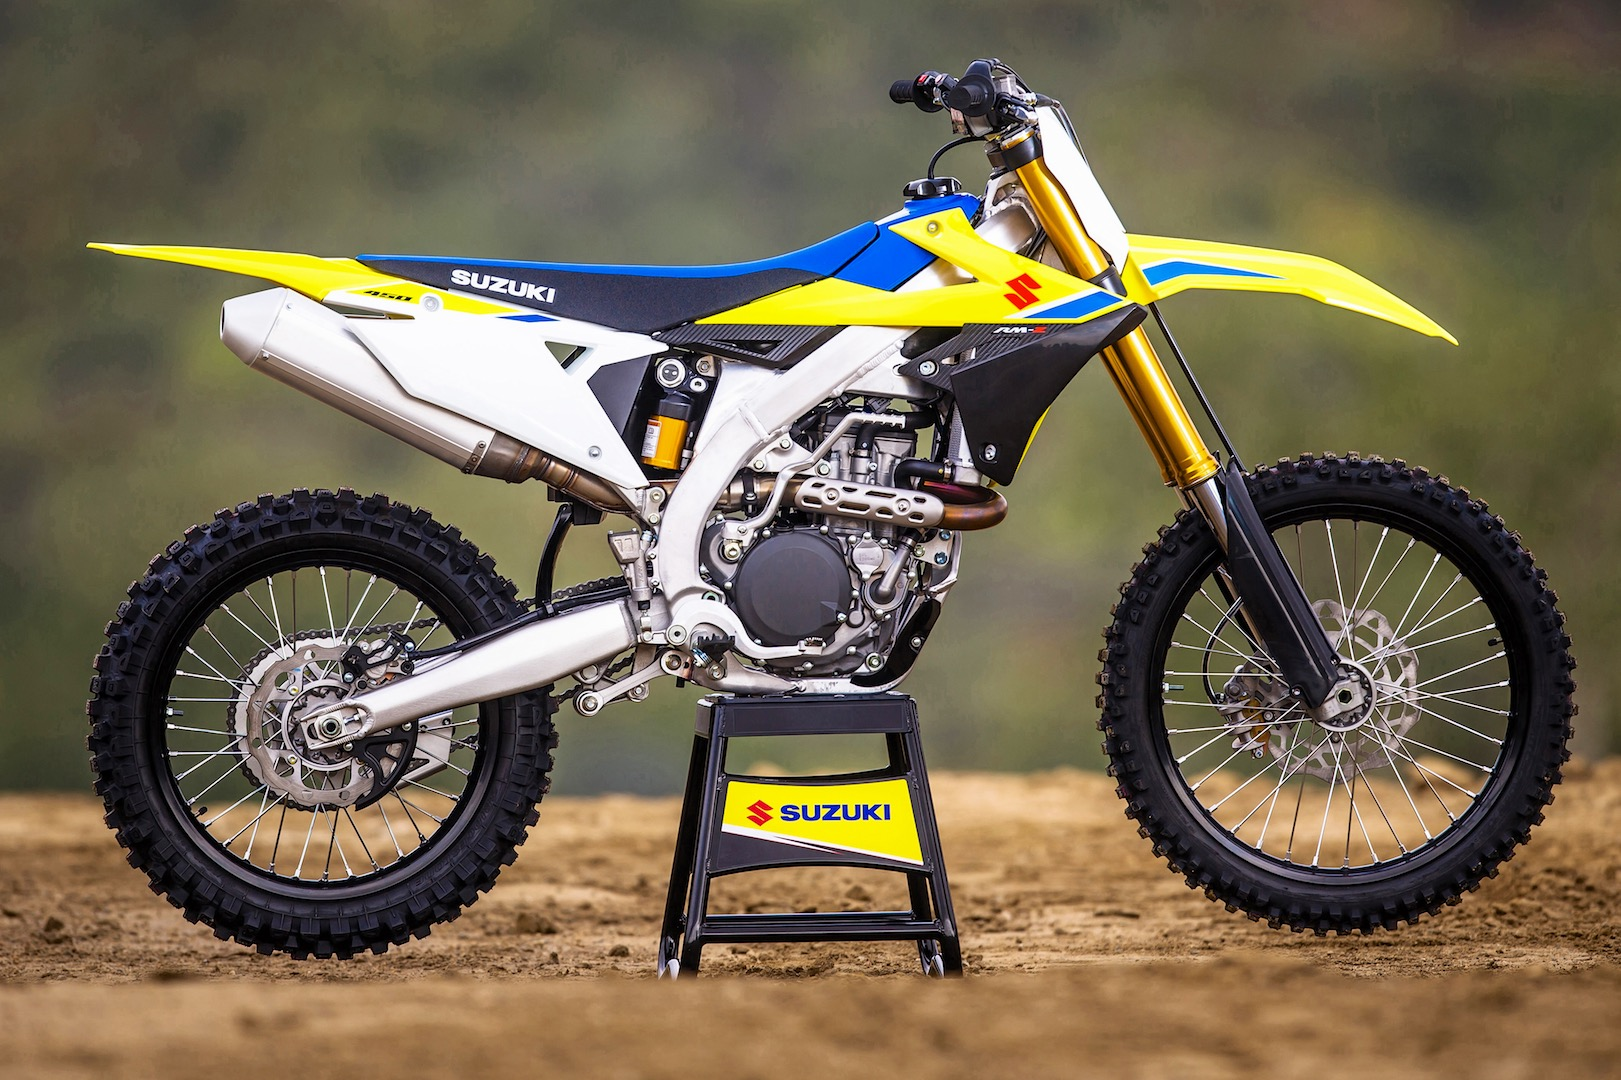 2018 suzuki rm z450 first look 10 fast facts. Black Bedroom Furniture Sets. Home Design Ideas